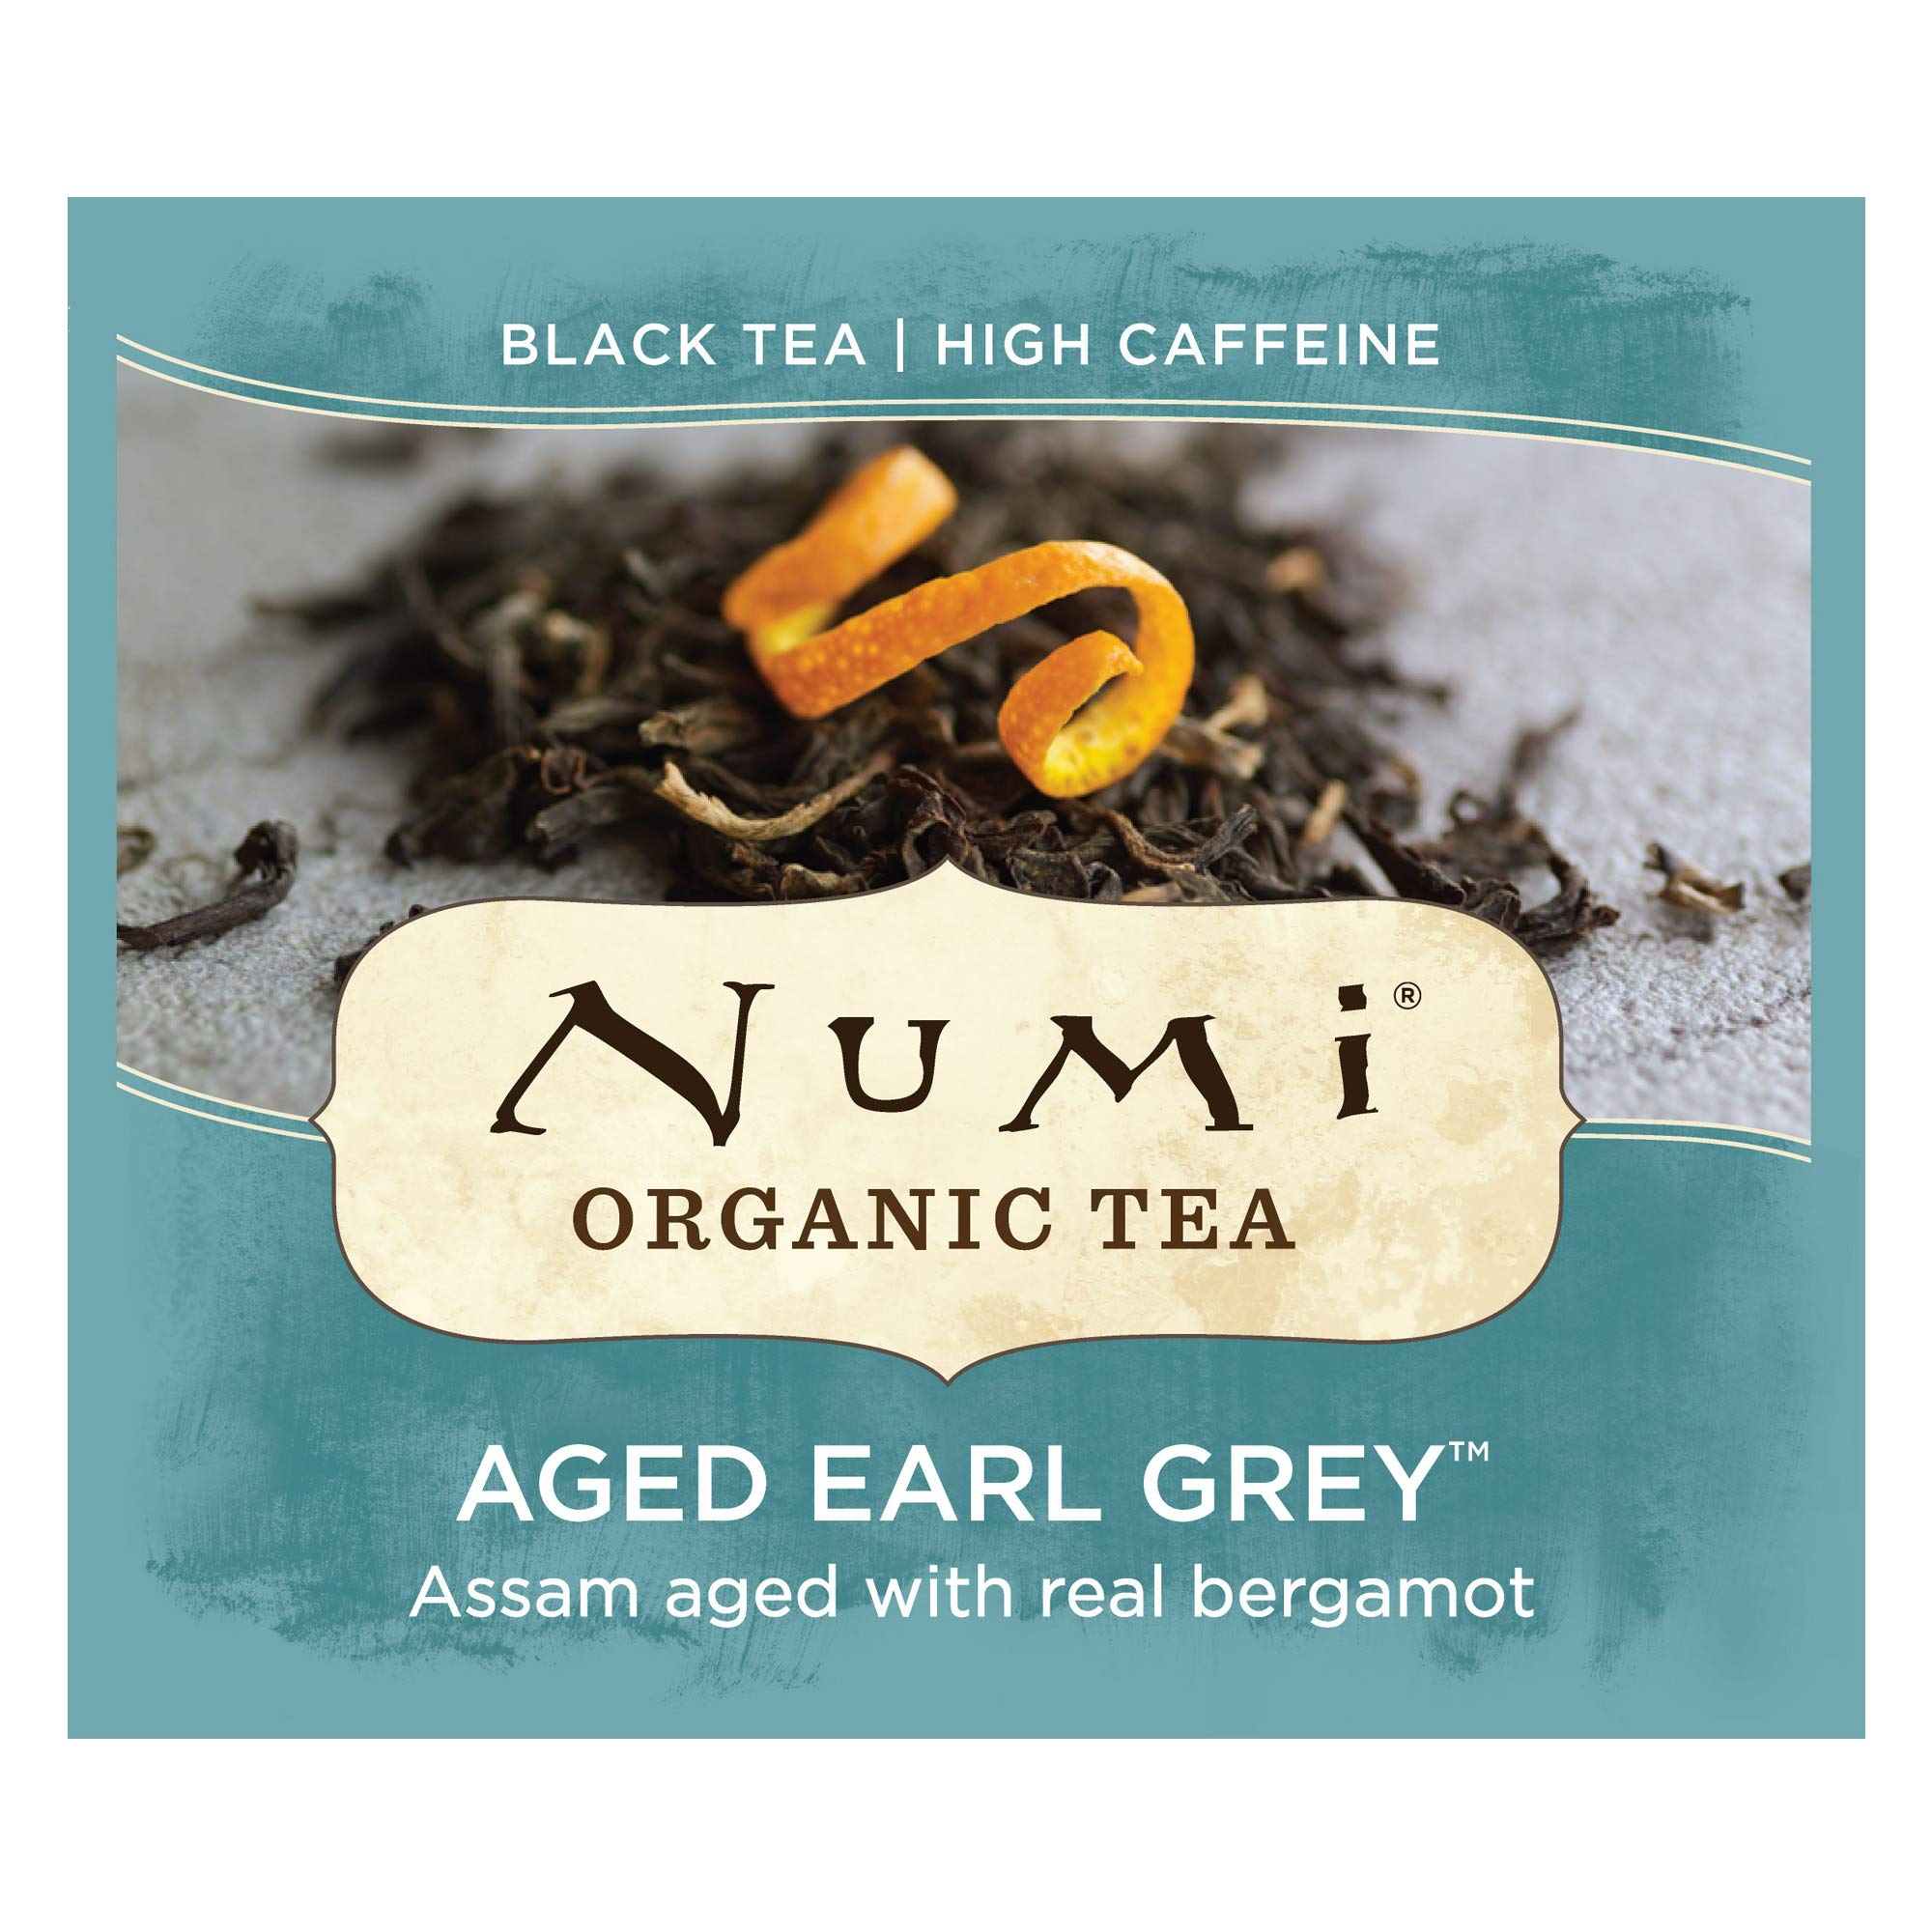 Numi Organic Tea Aged Earl Grey, 100 Count Box of Tea Bags, Black Tea (Packaging May Vary) by Numi